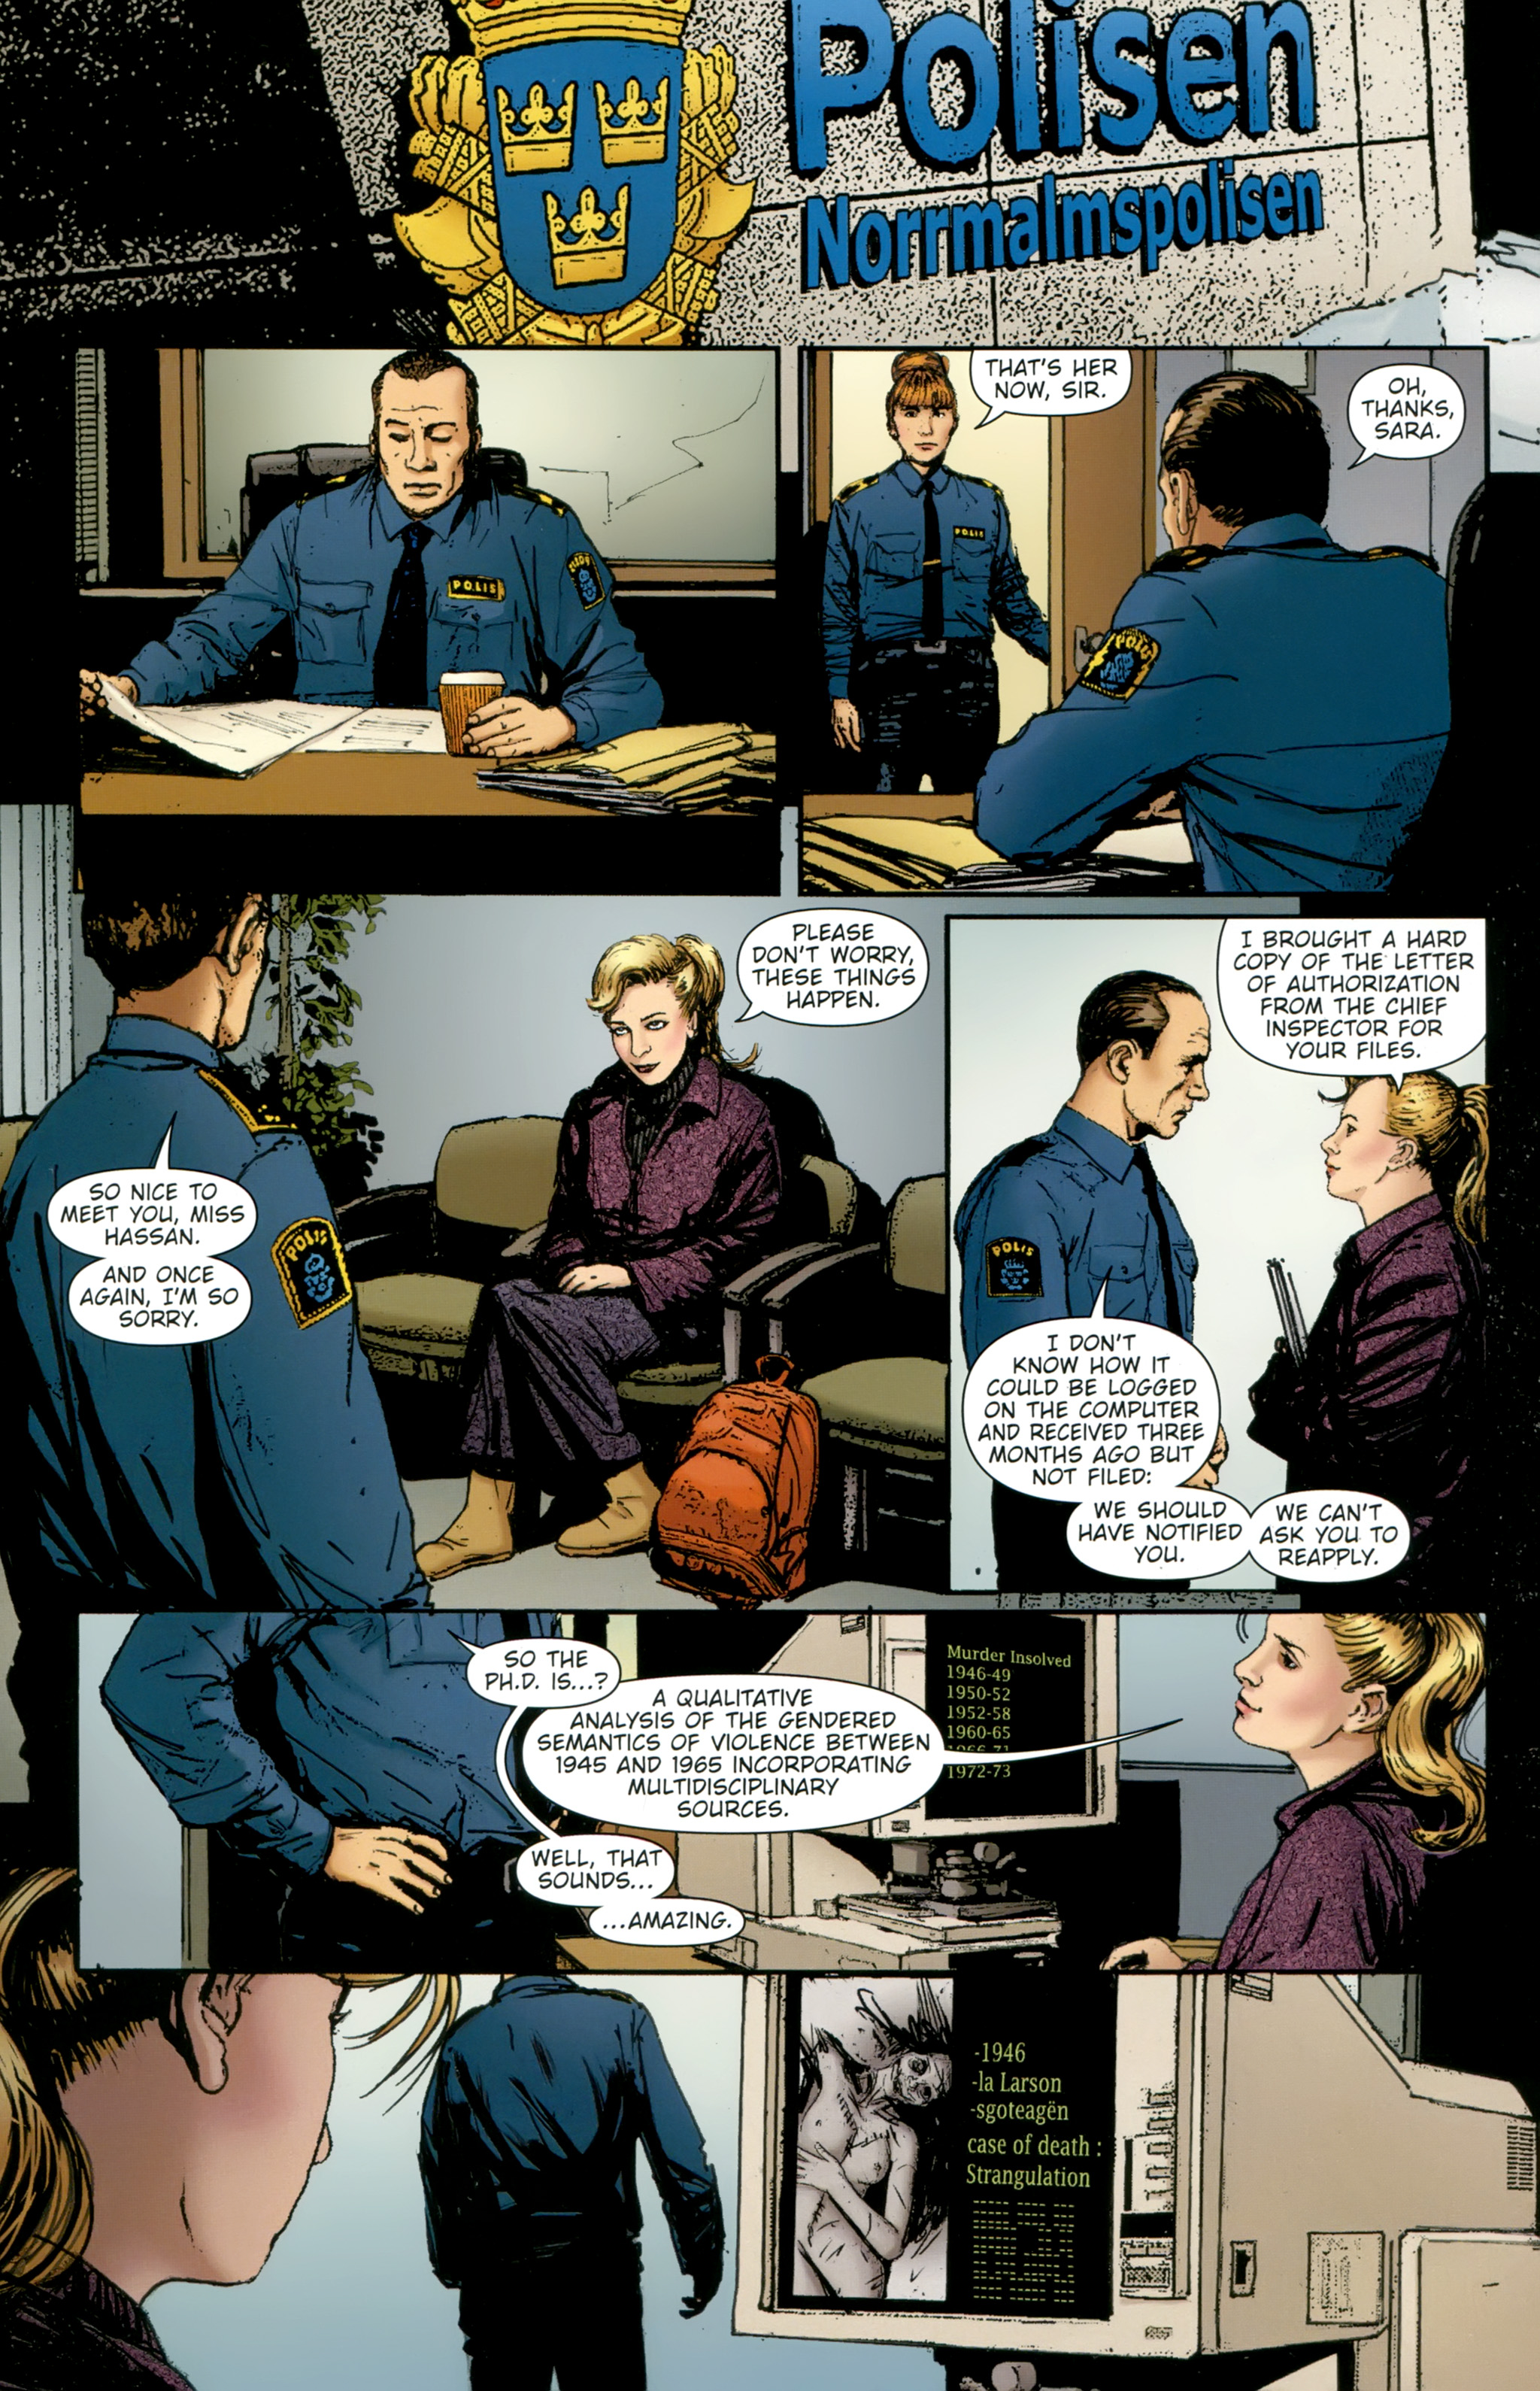 Read online The Girl With the Dragon Tattoo comic -  Issue # TPB 2 - 52